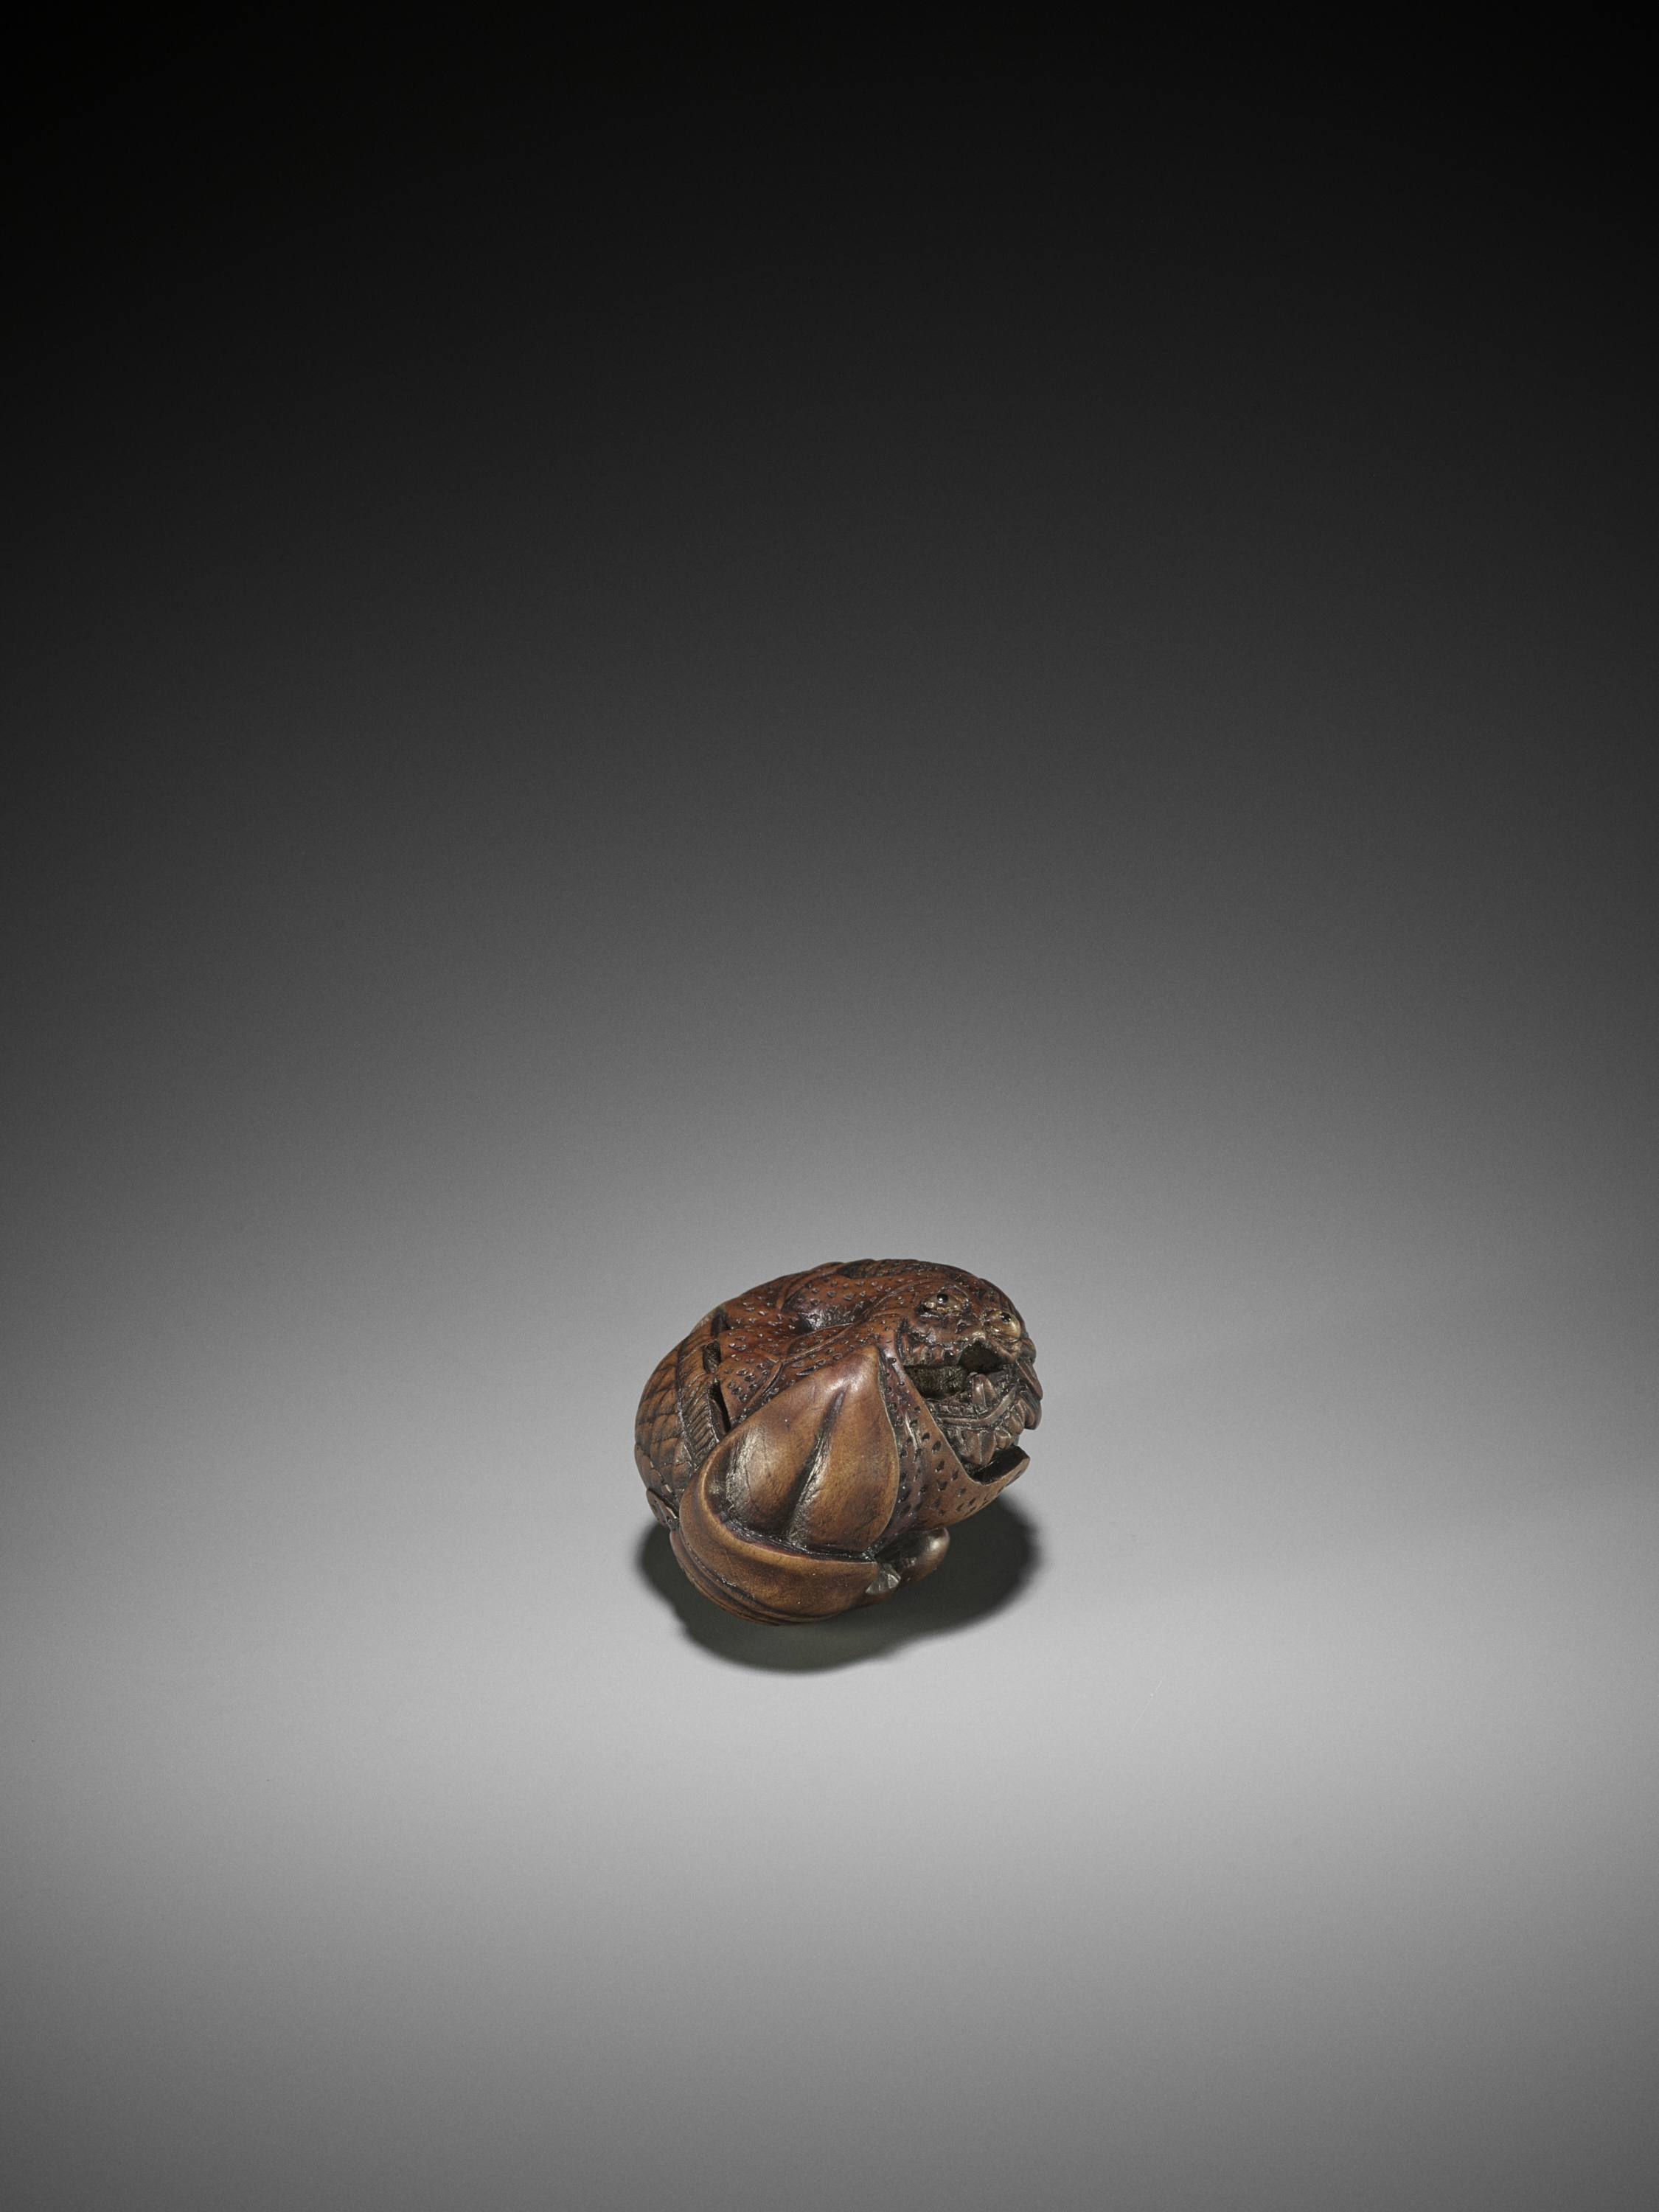 TOYOKAZU: A WOOD NETSUKE OF A DRAGON IN A MIKAN - Image 5 of 10